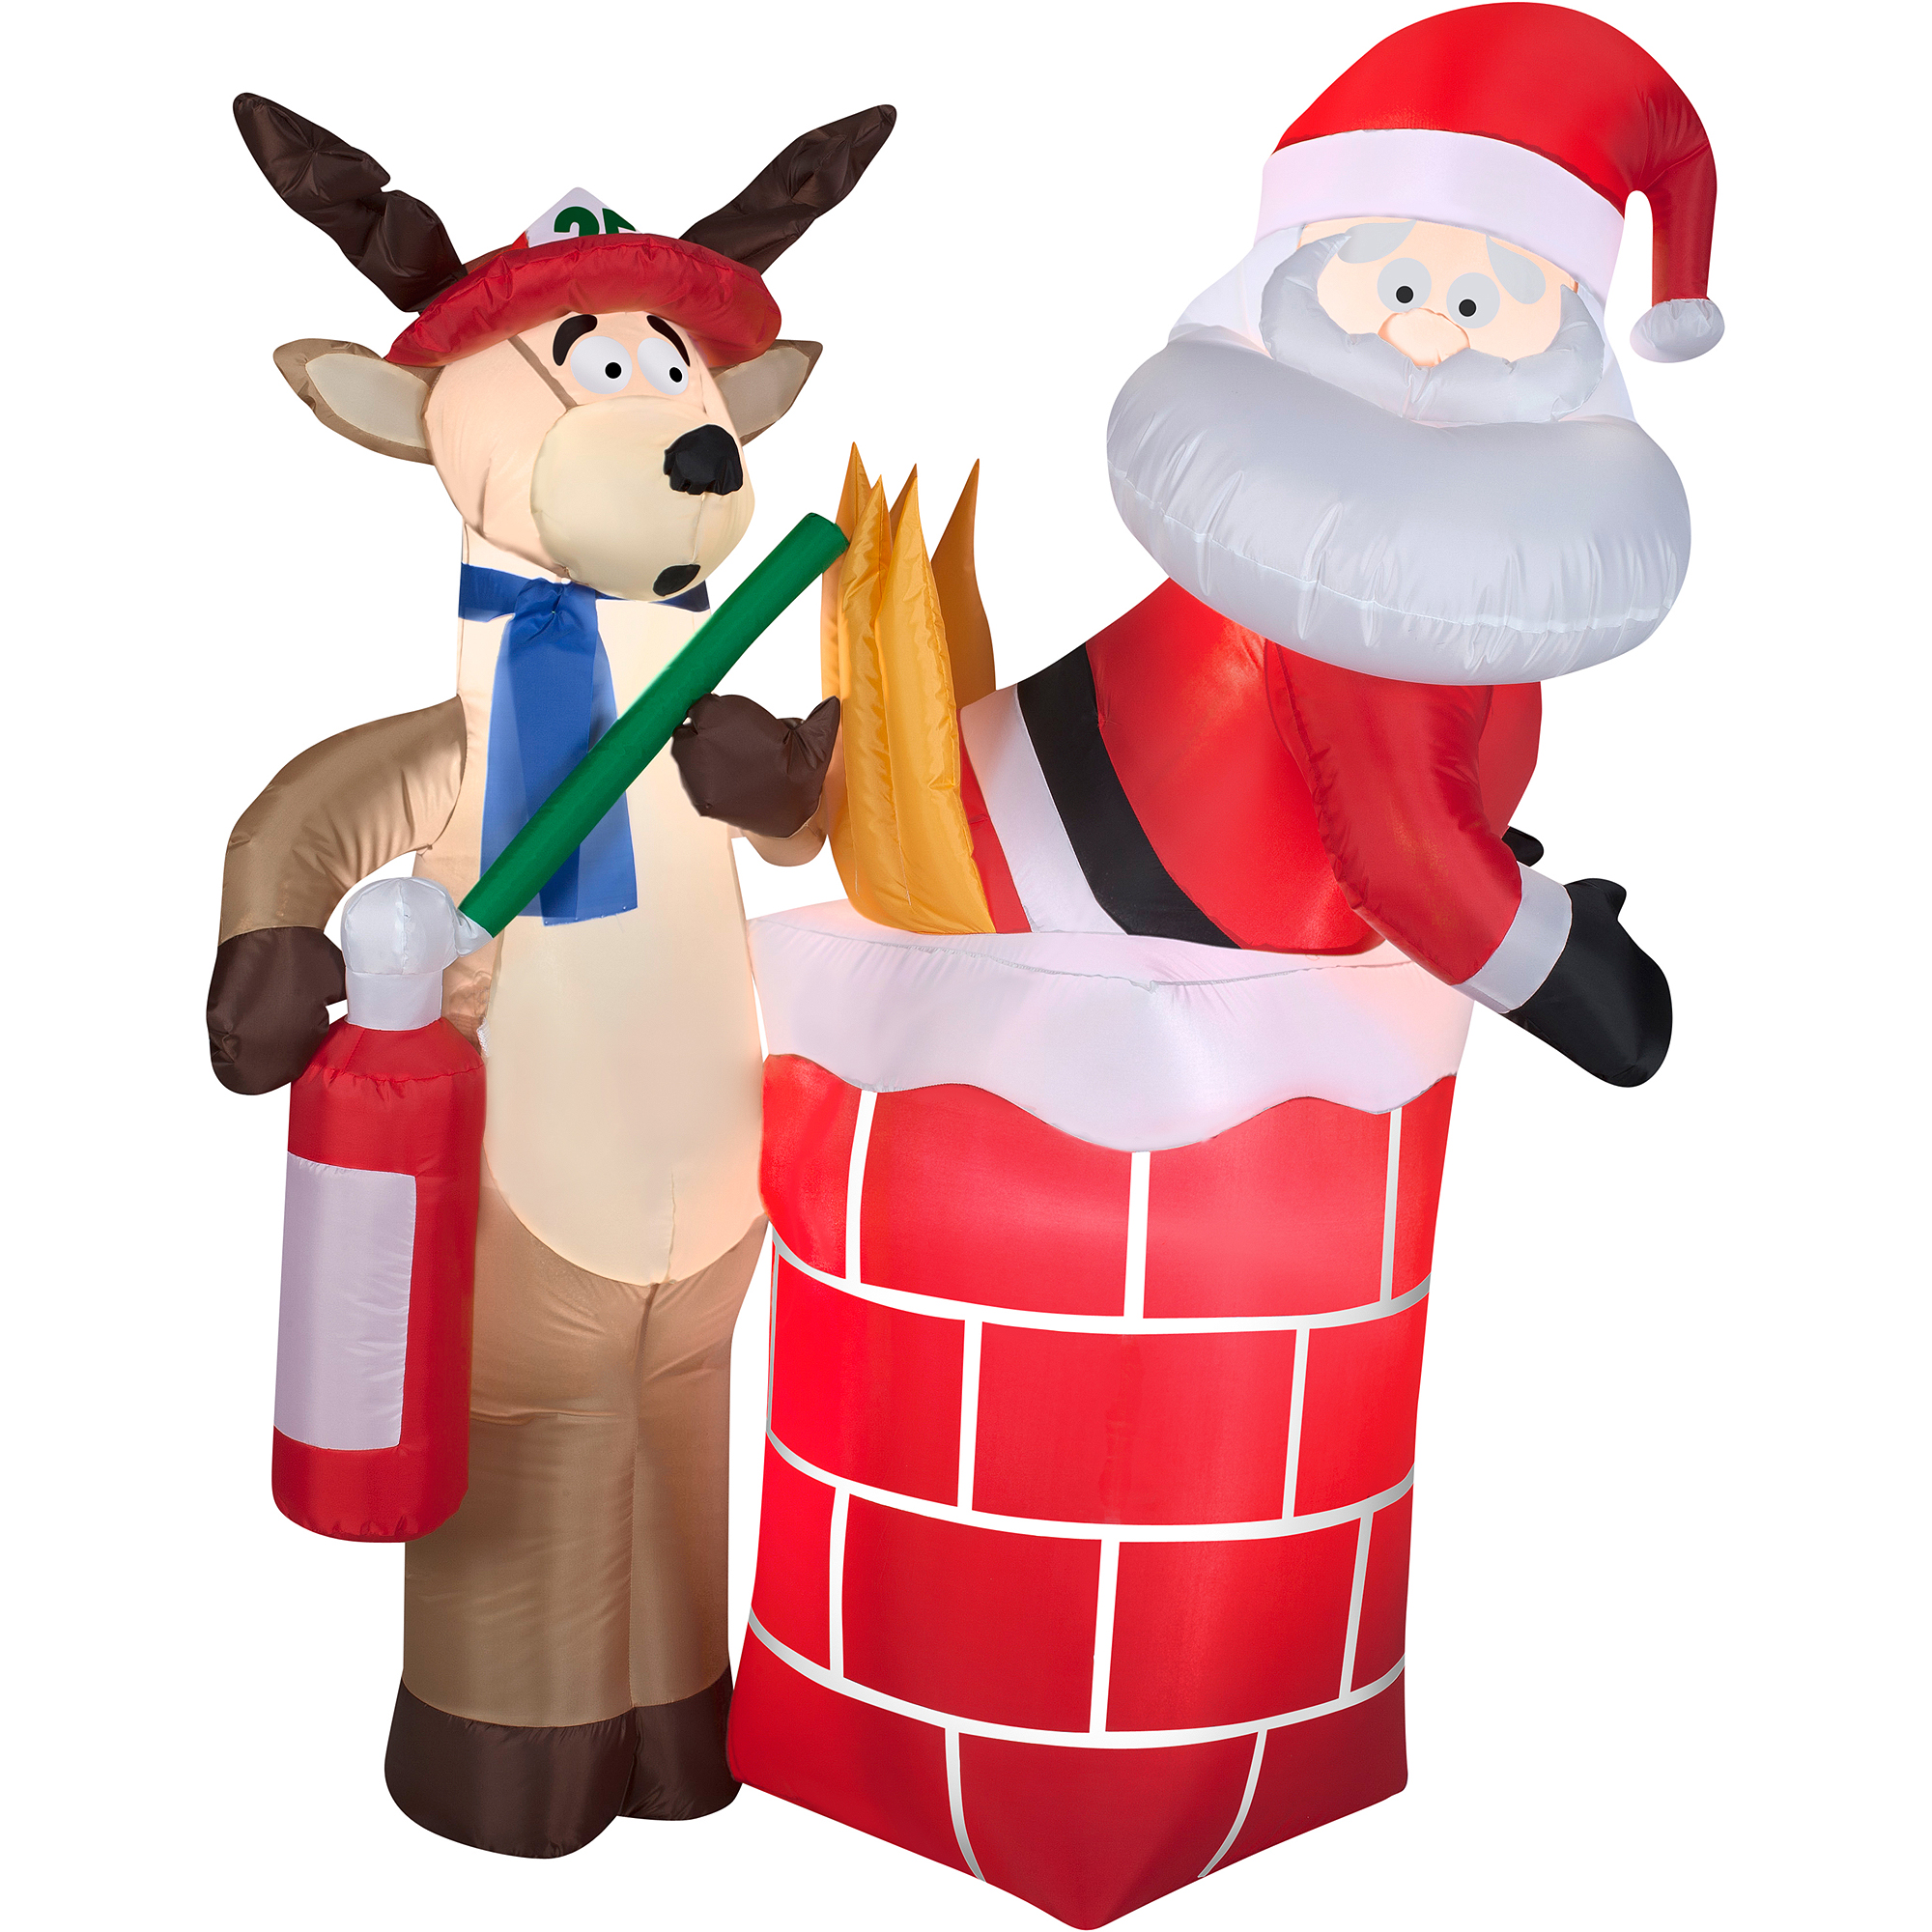 Christmas Decor Airblown Inflatable 4.5' Santa on Fire in Chimney